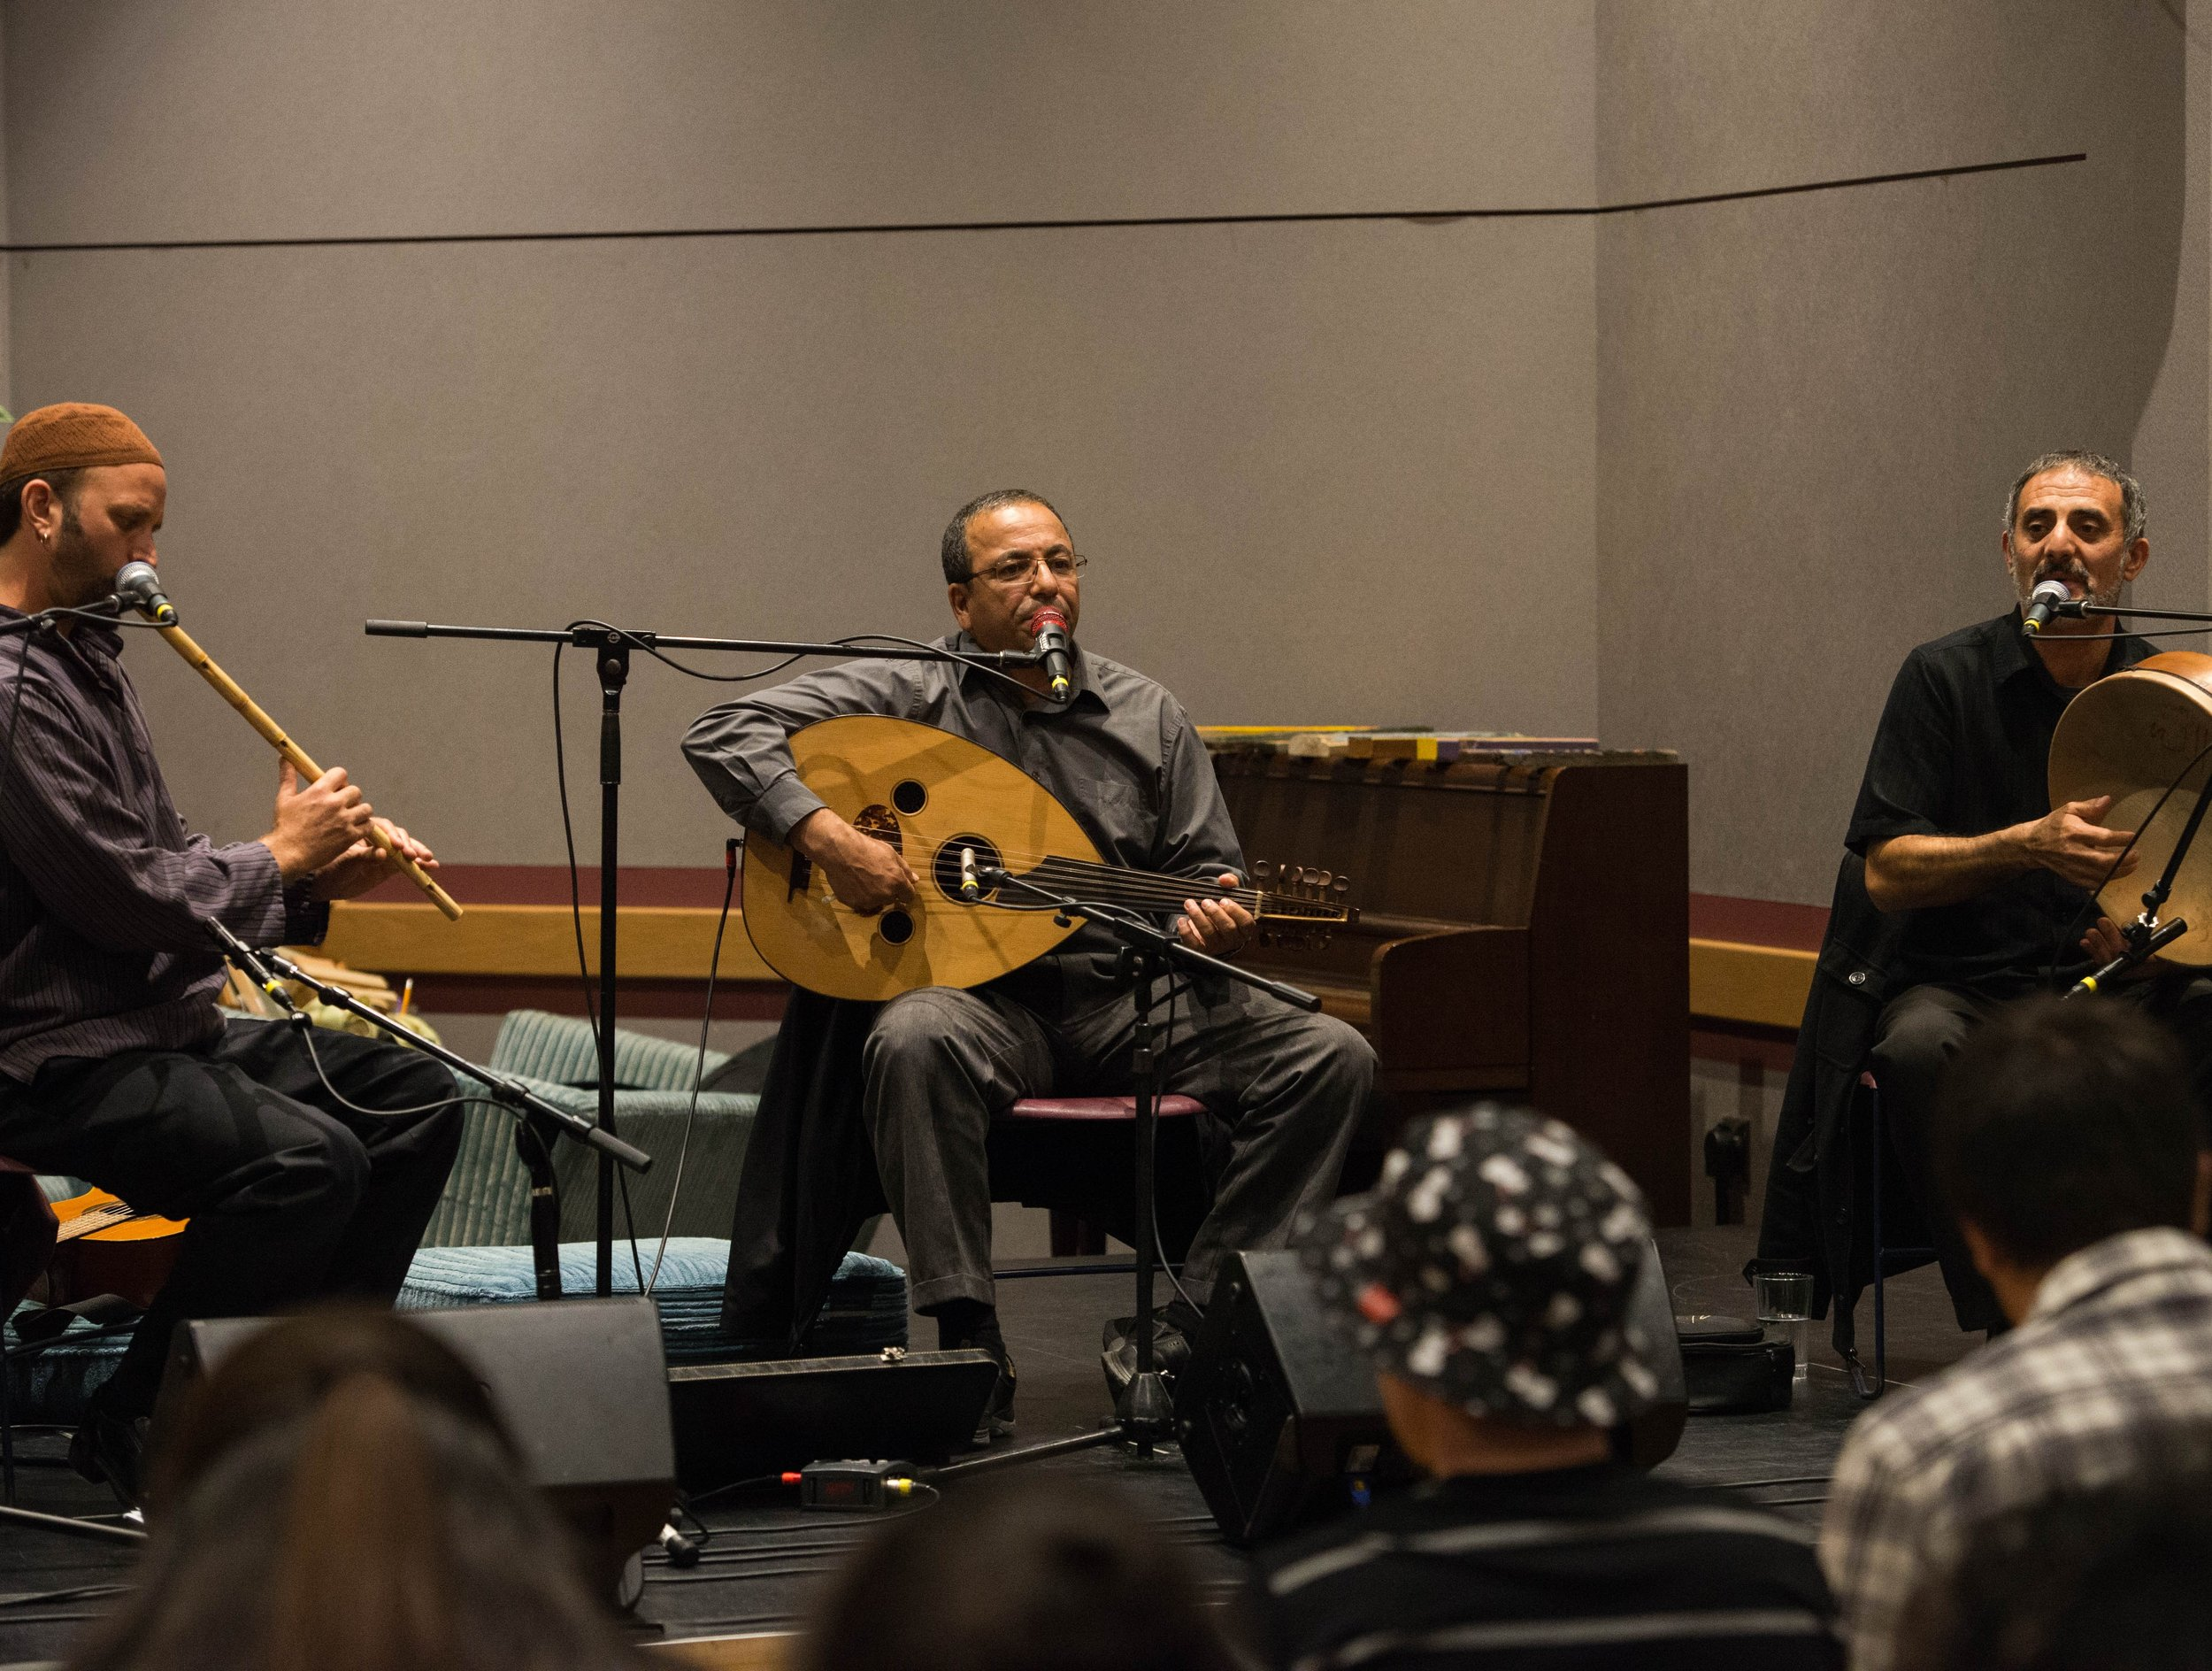 Photographer: Stuart Beeksma The Qadim Ensemble performs a historic song from Arabic culture during their concert on Friday, Sept. 18.  They play traditional instruments from several Middle Eastern countries.